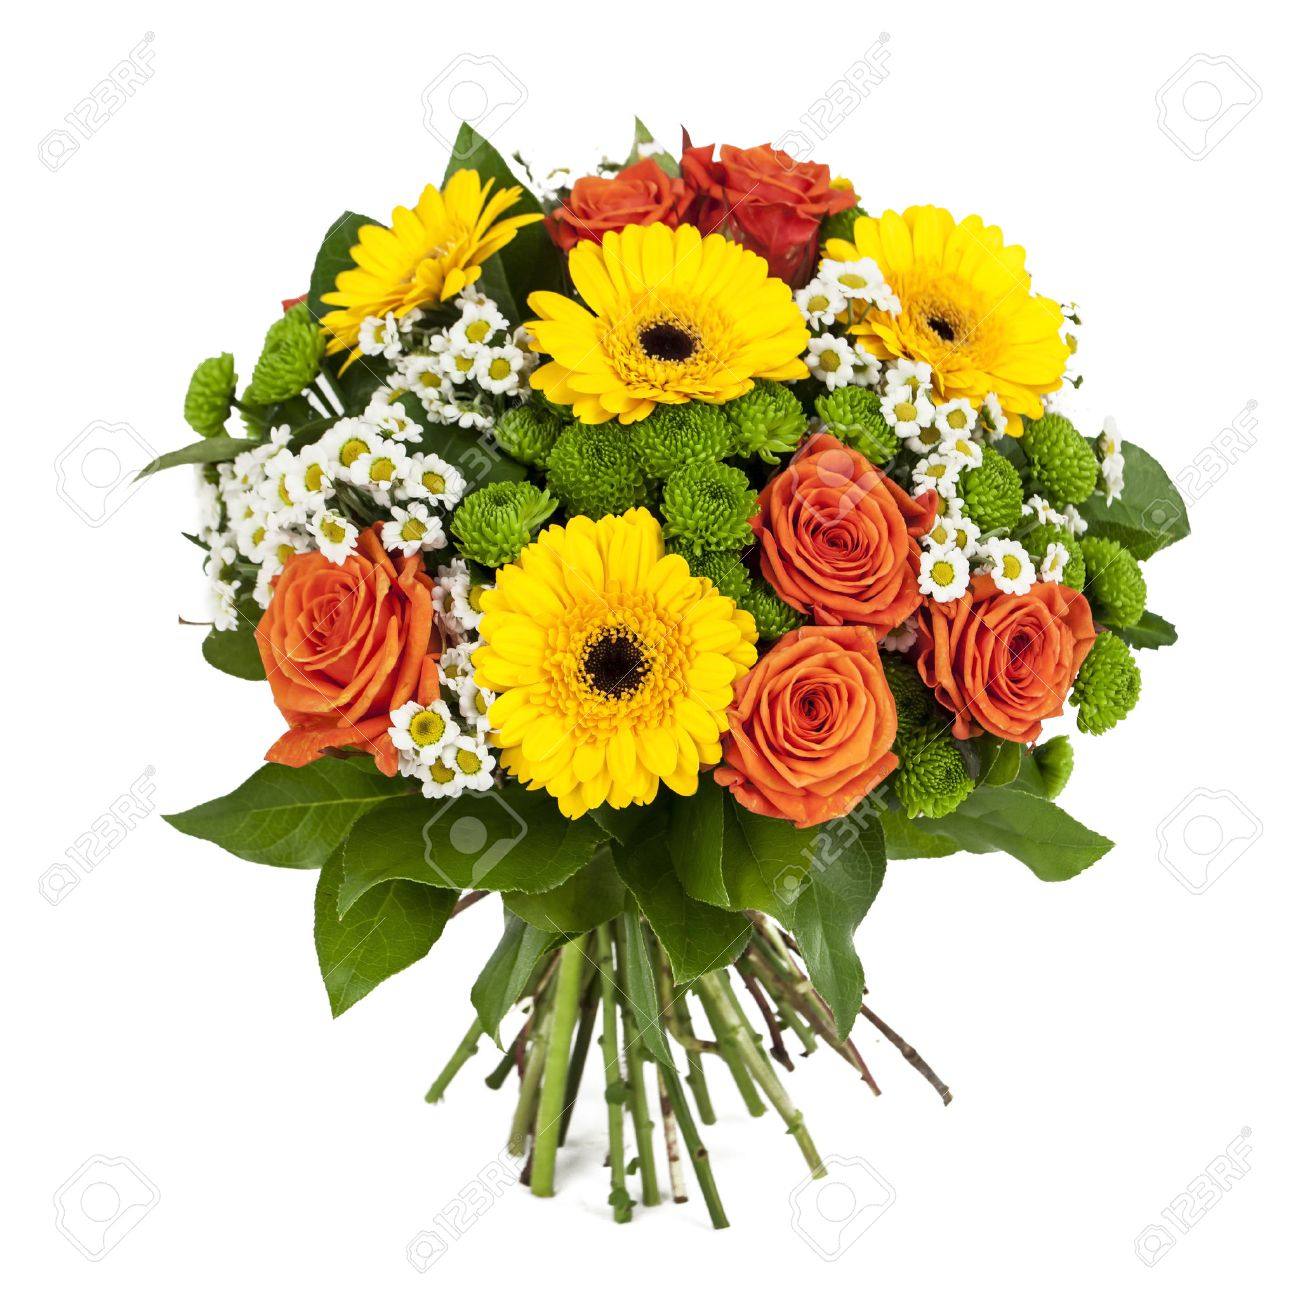 Bouquet of yellow and orange flowers isolated on white background bouquet of yellow and orange flowers isolated on white background stock photo 34783392 dhlflorist Gallery